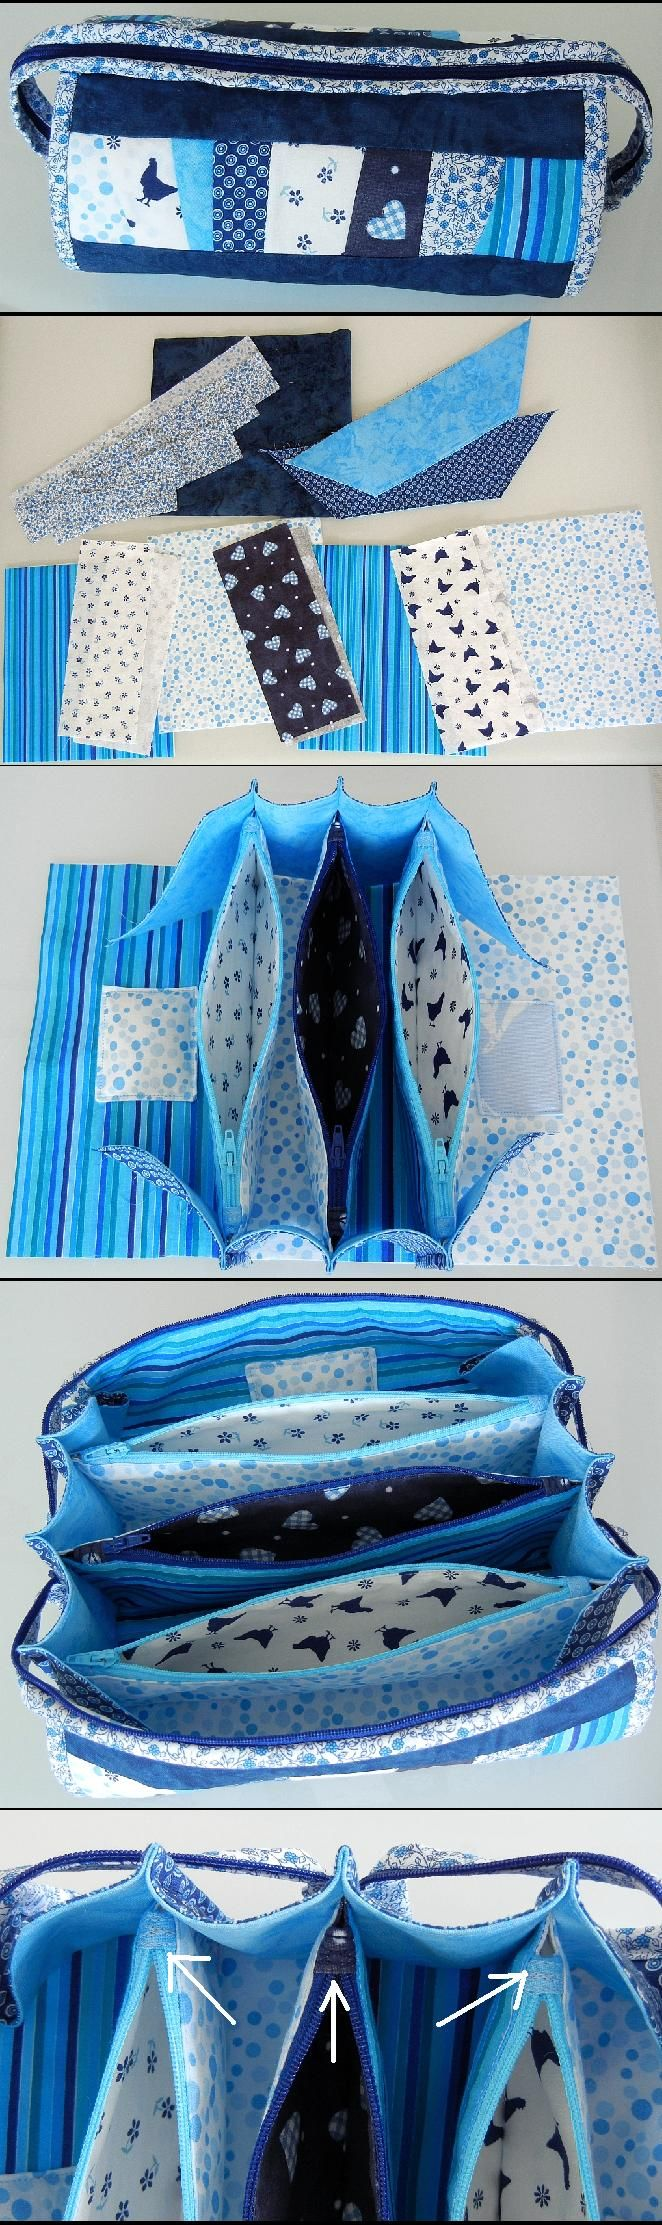 """my projects: sew together bag  pay-for pattern from http://www.craftsy.com/pattern/sewing/accessory/sew-together-bag/36309  this tutorial helped a lot: http://www.quiltbarn.blogspot.com/2014/03/sew-long.html borrowed someone's idea to cut zippers to 8 3/4"""" and put tabs on them - much easier to sew sides!"""